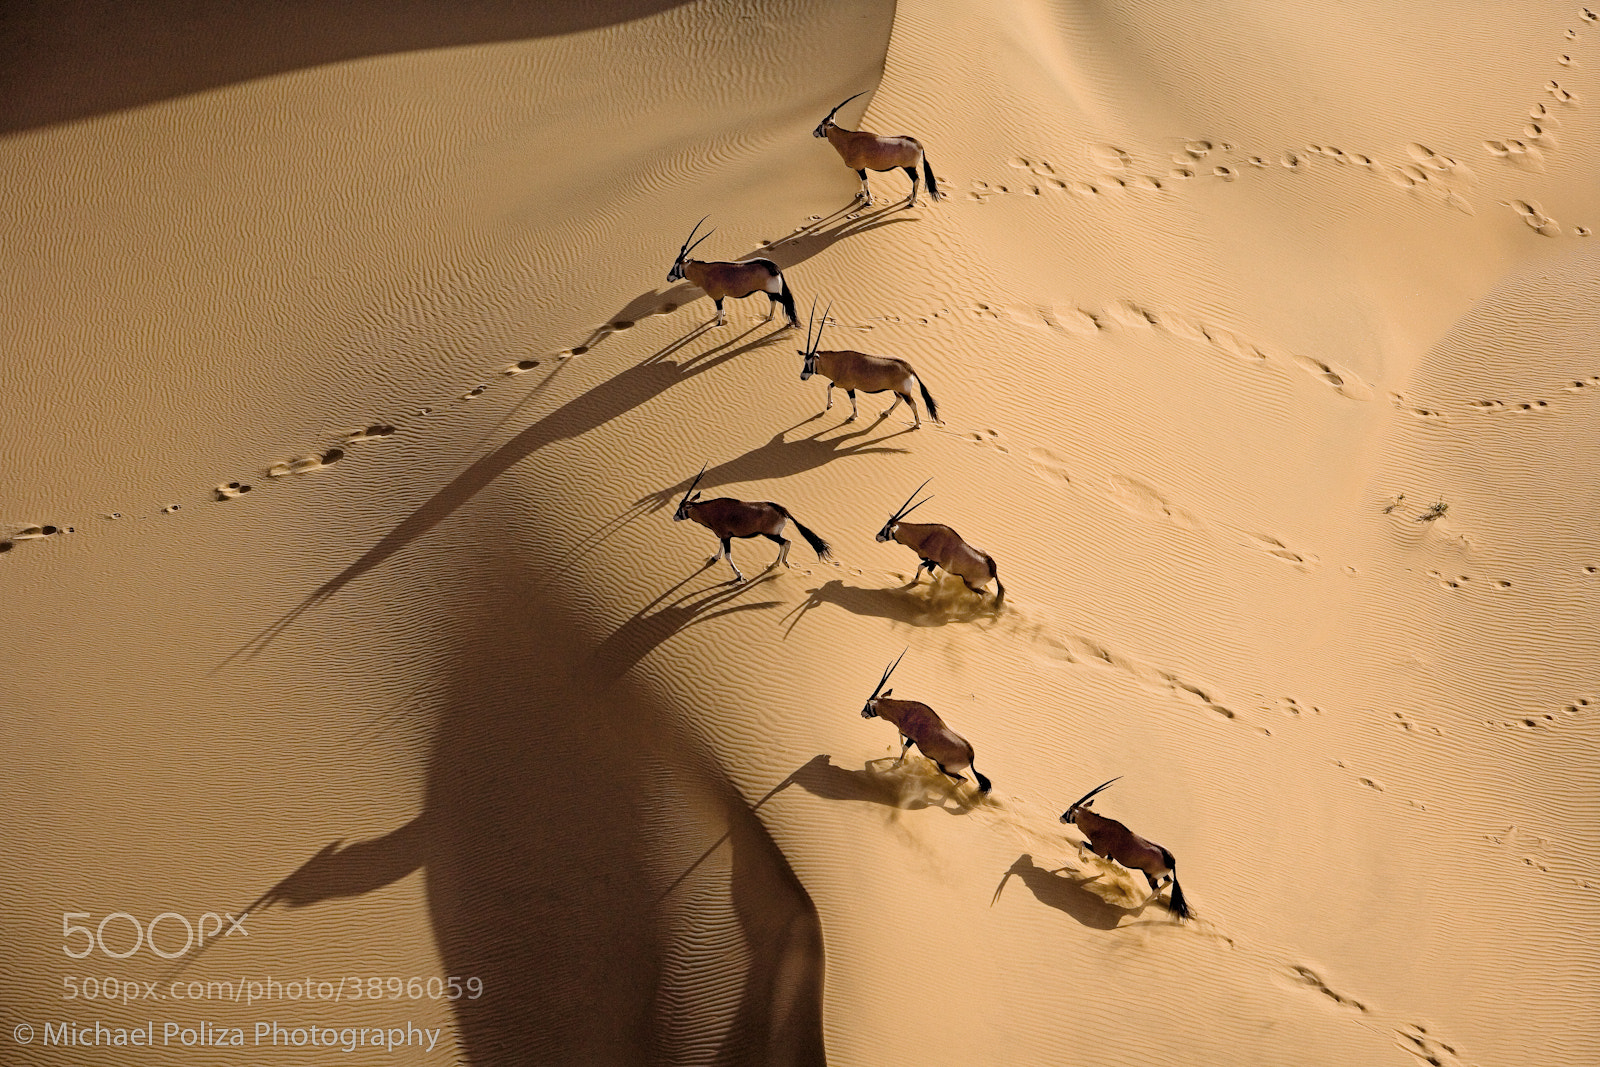 Photograph Gemsbok Herd by Michael Poliza on 500px